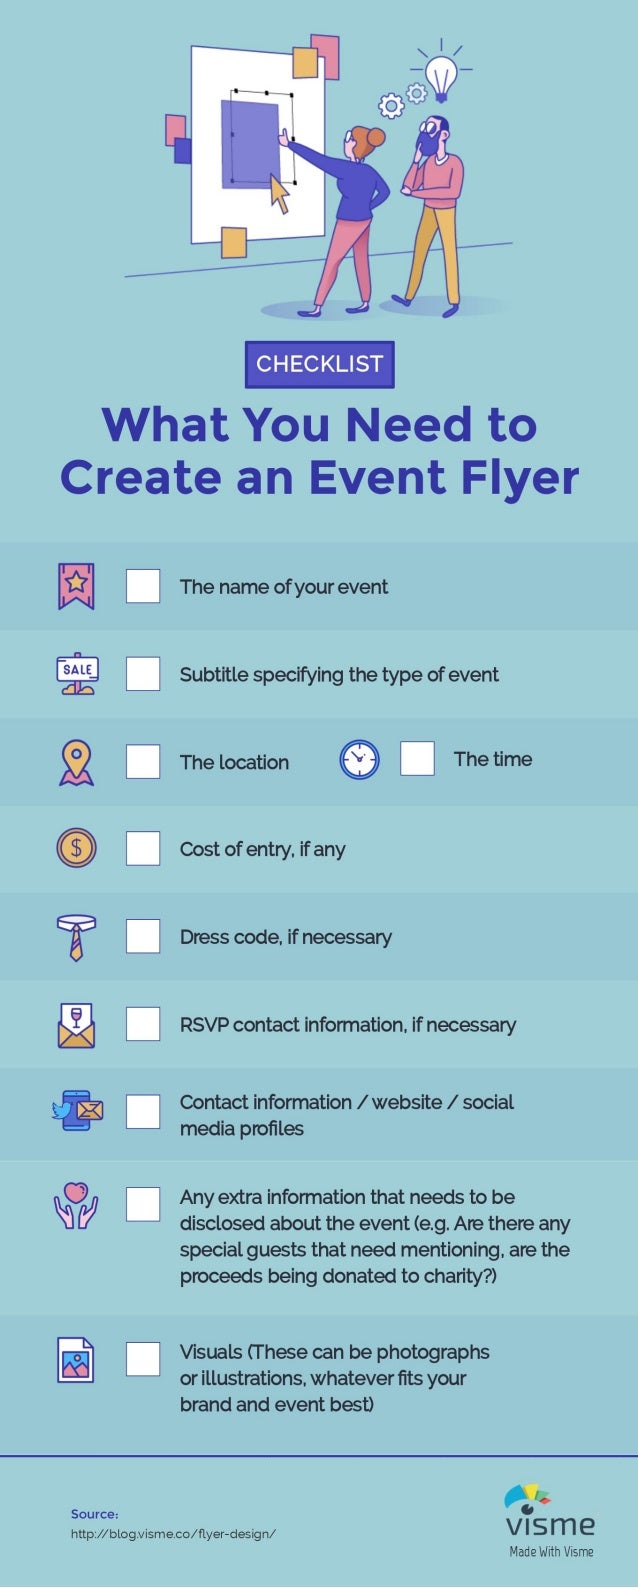 infographic checklist what you need to create an event flyer